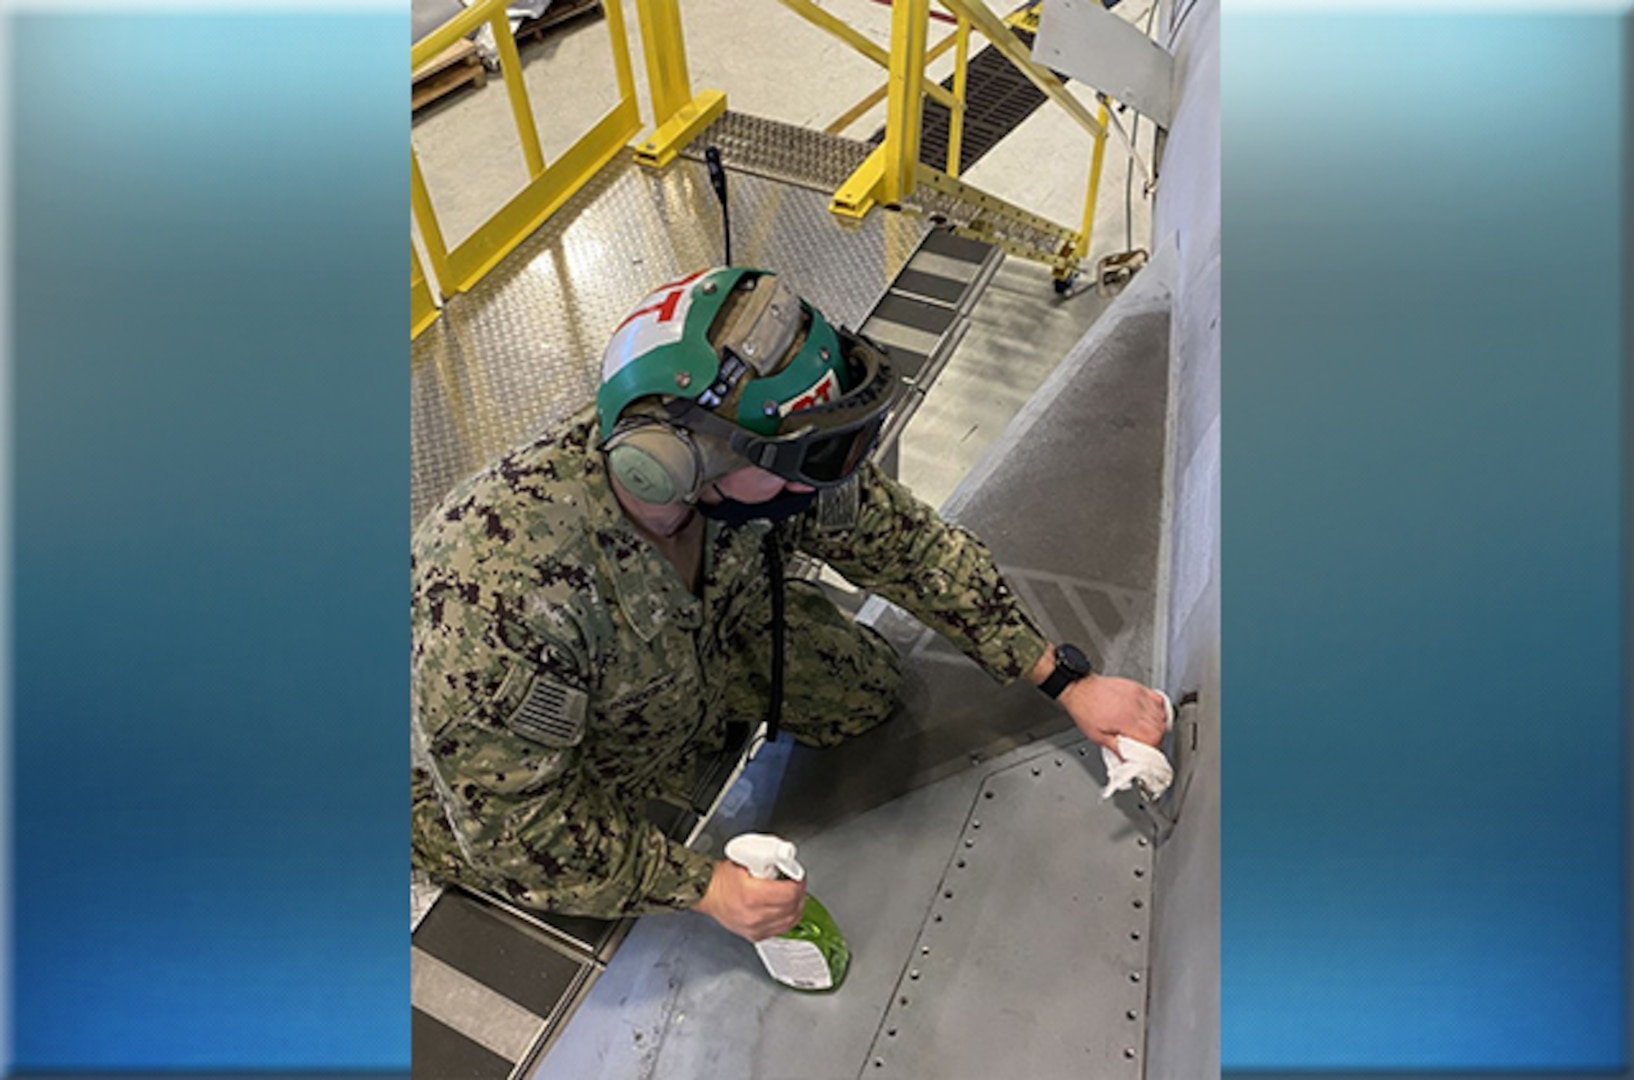 Airman cleans aircraft with disinfectant